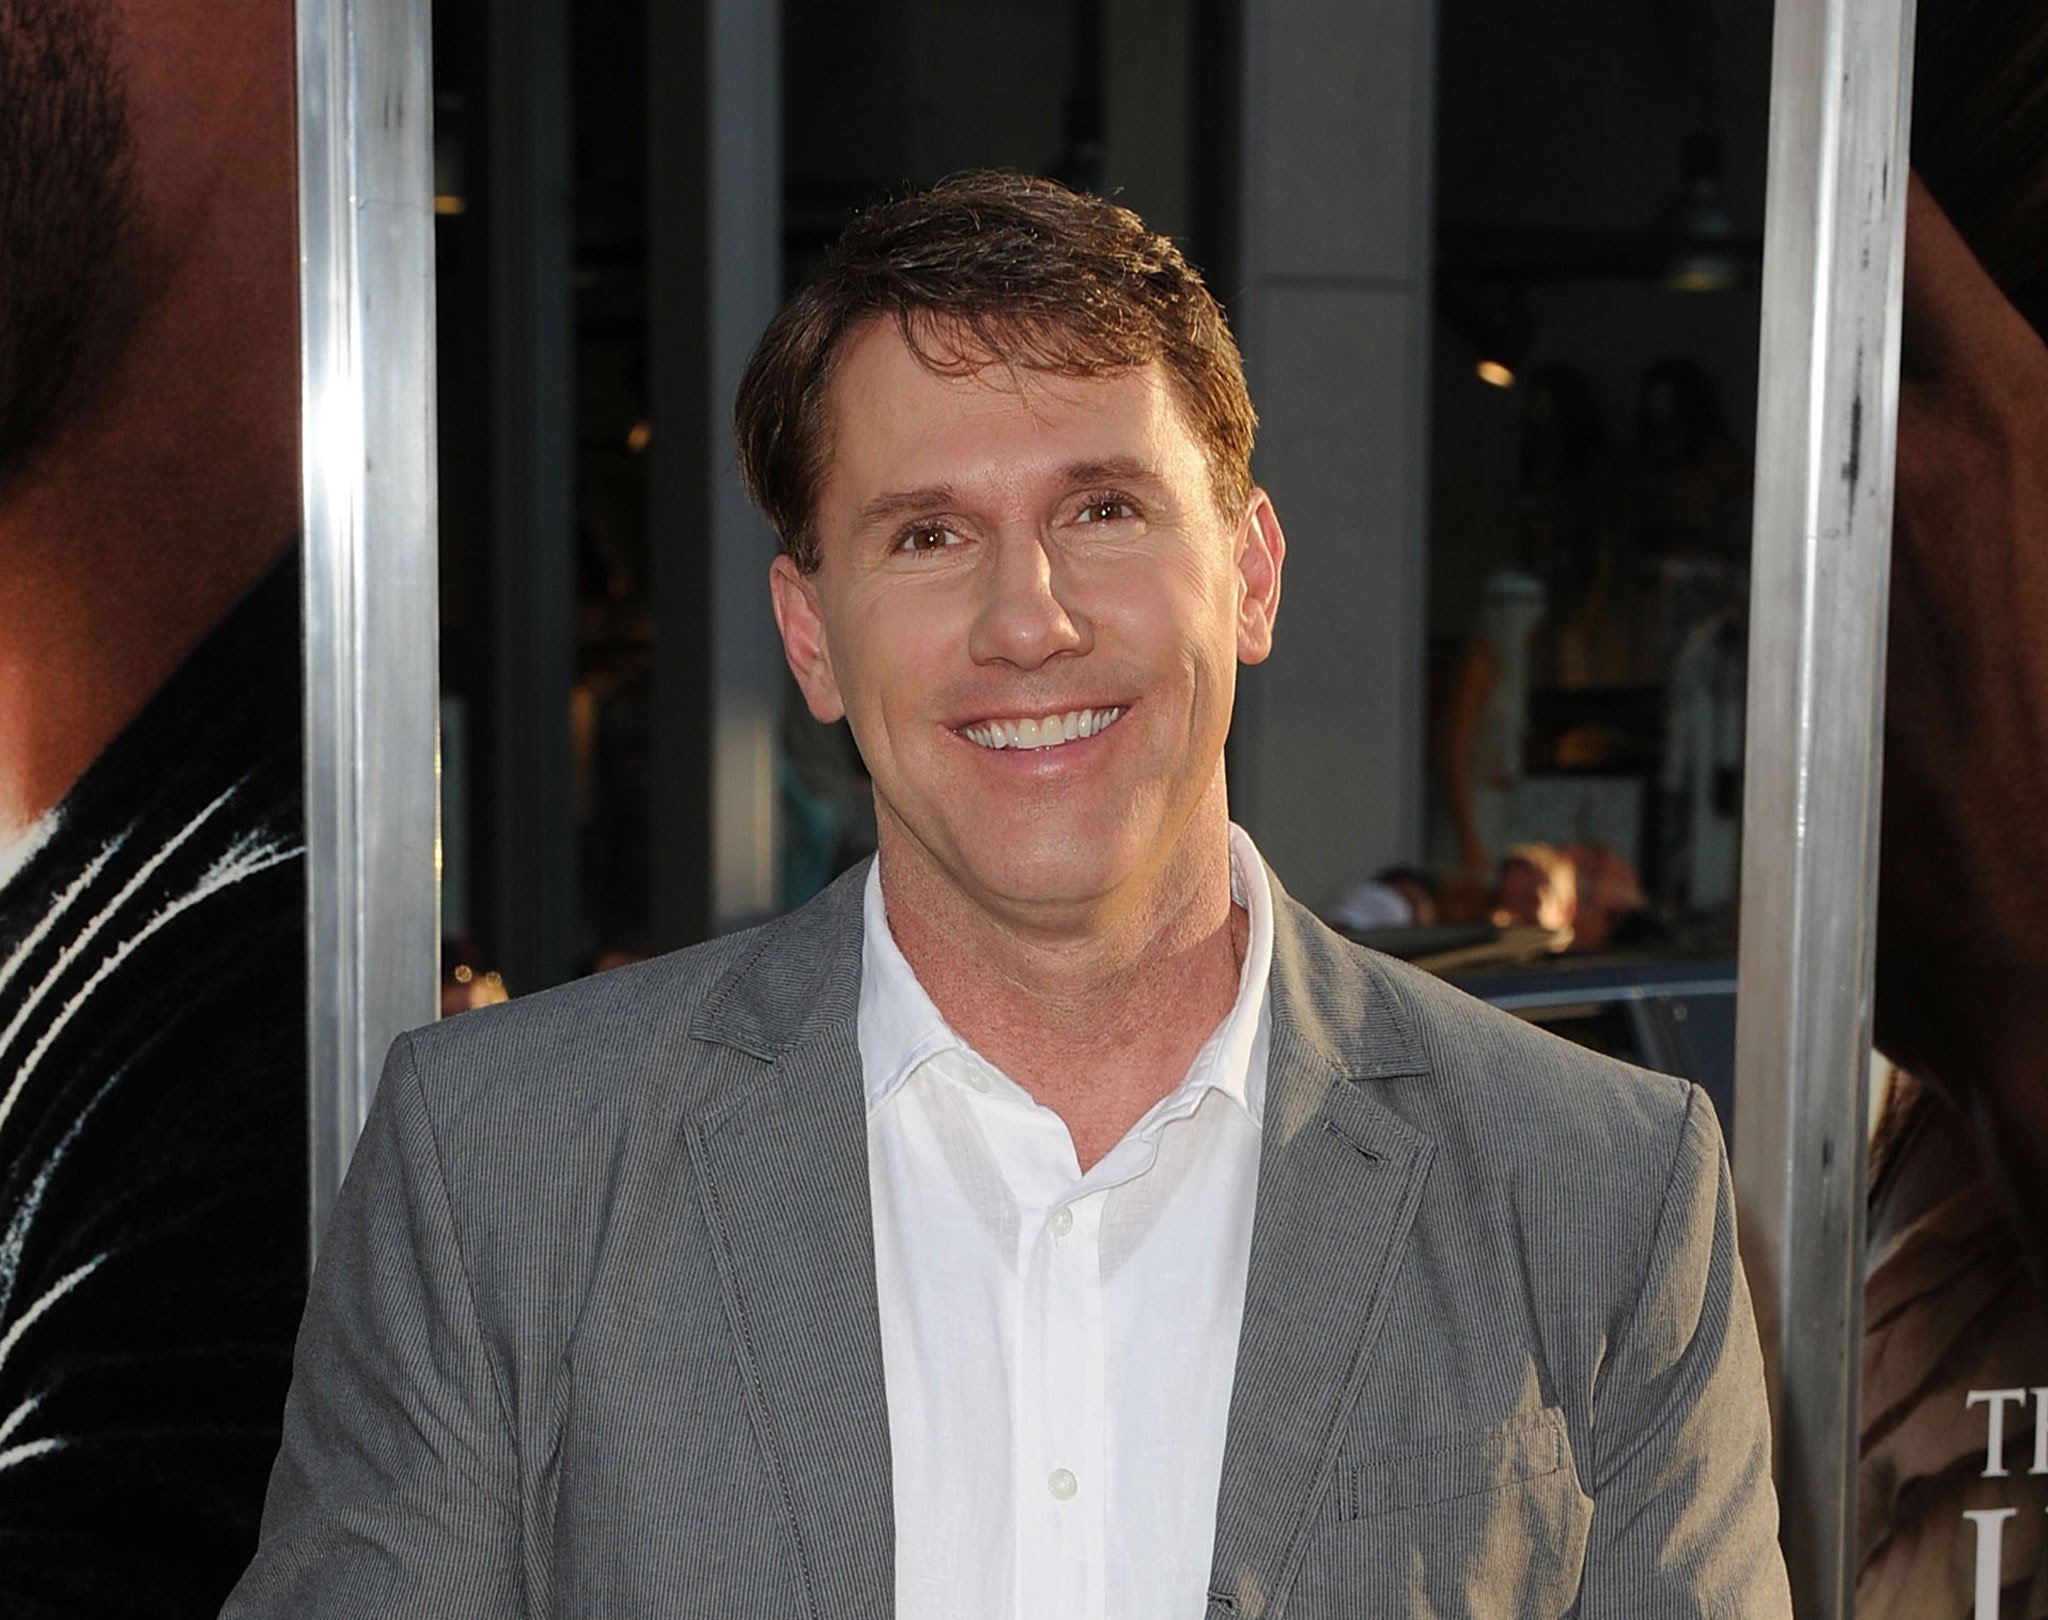 nicholas sparks biography essay Nicholas sparks biography: nicholas sparks is one of the world's most beloved storytellers all of his books have been new york times bestsellers,.